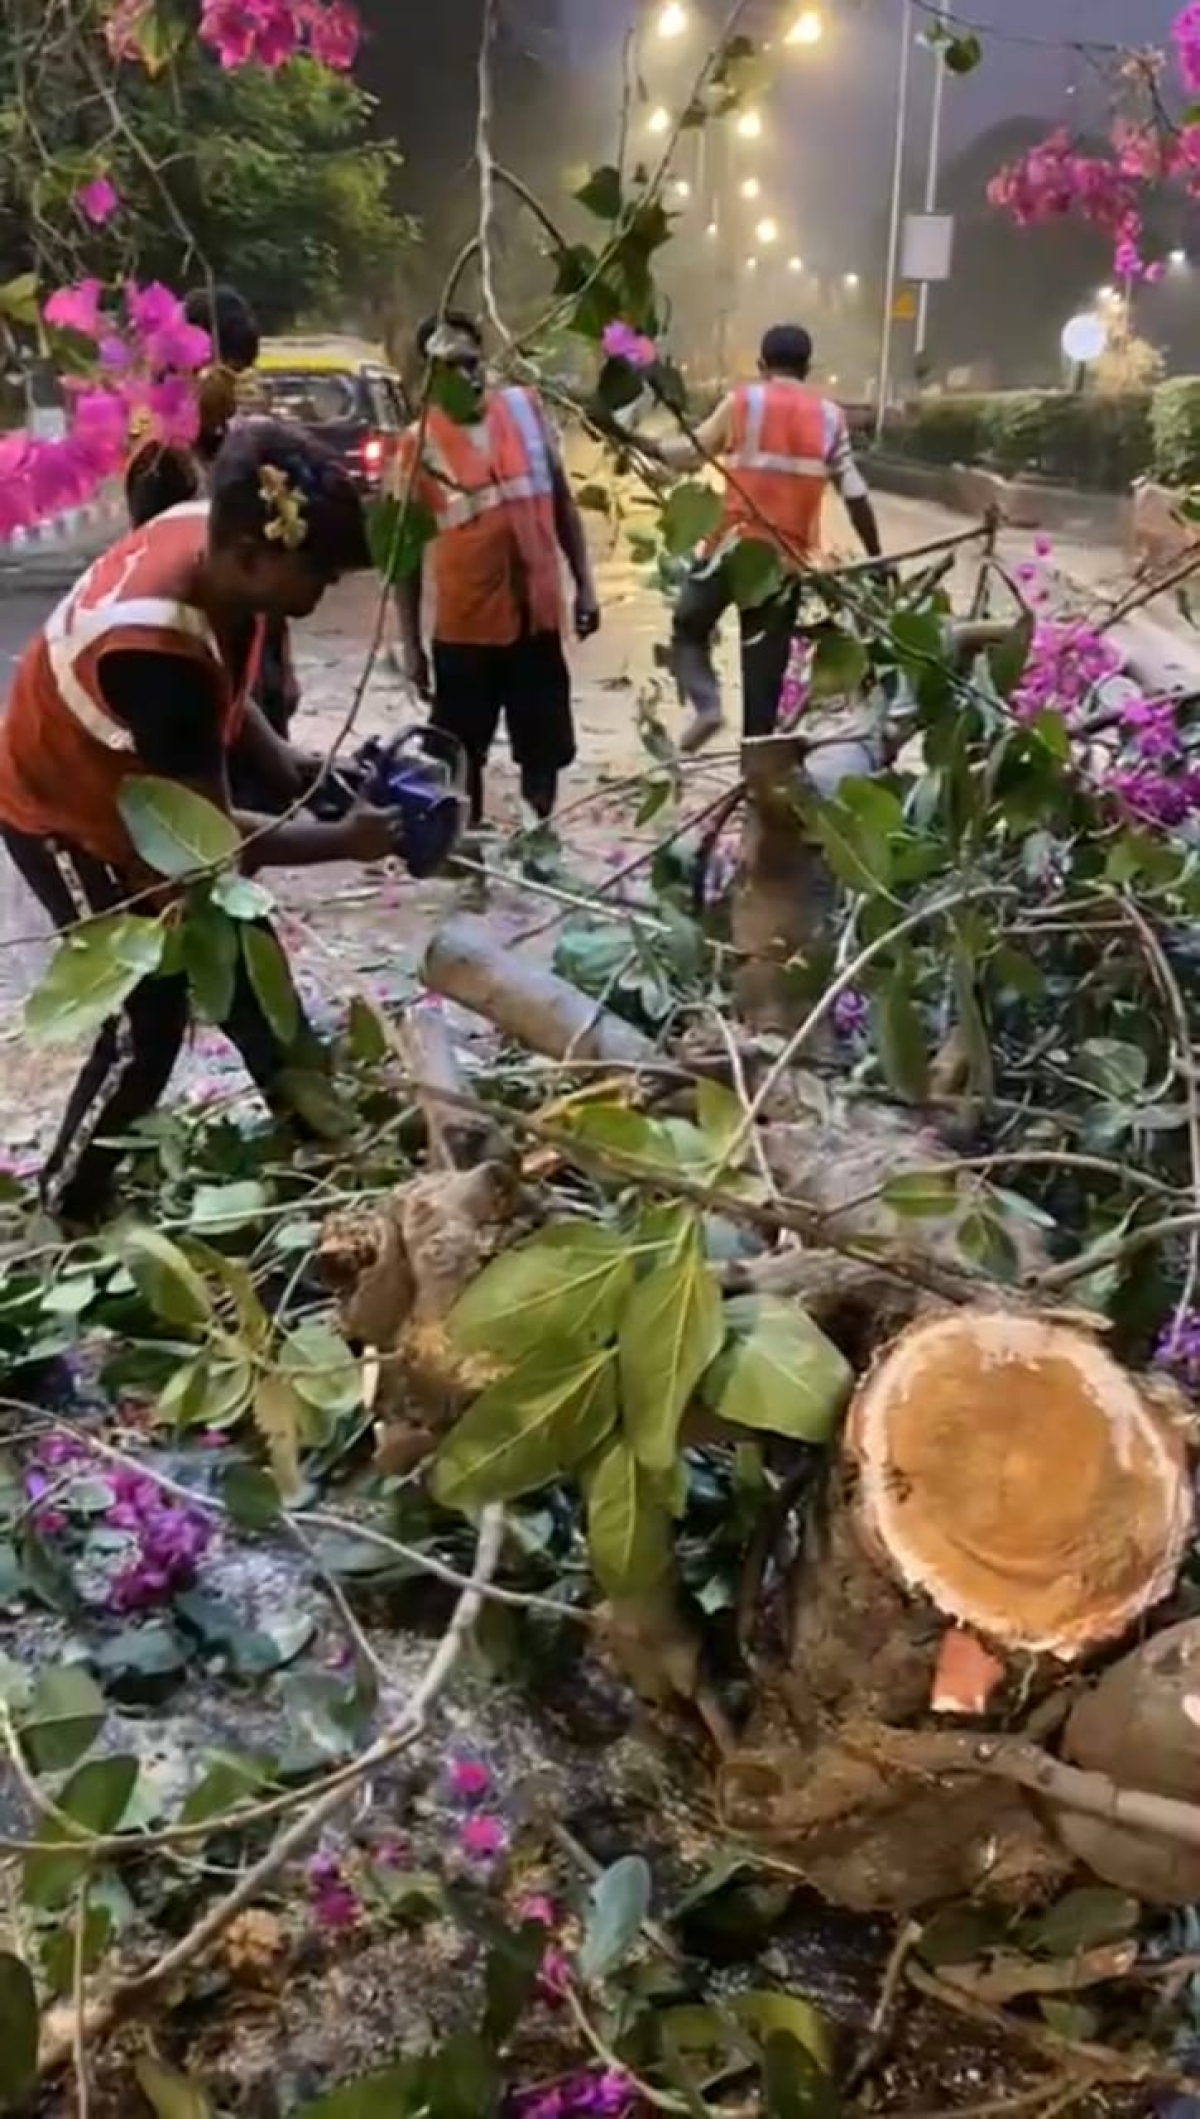 Mumbai: BMC to float tenders for contractors to prune, maintain trees